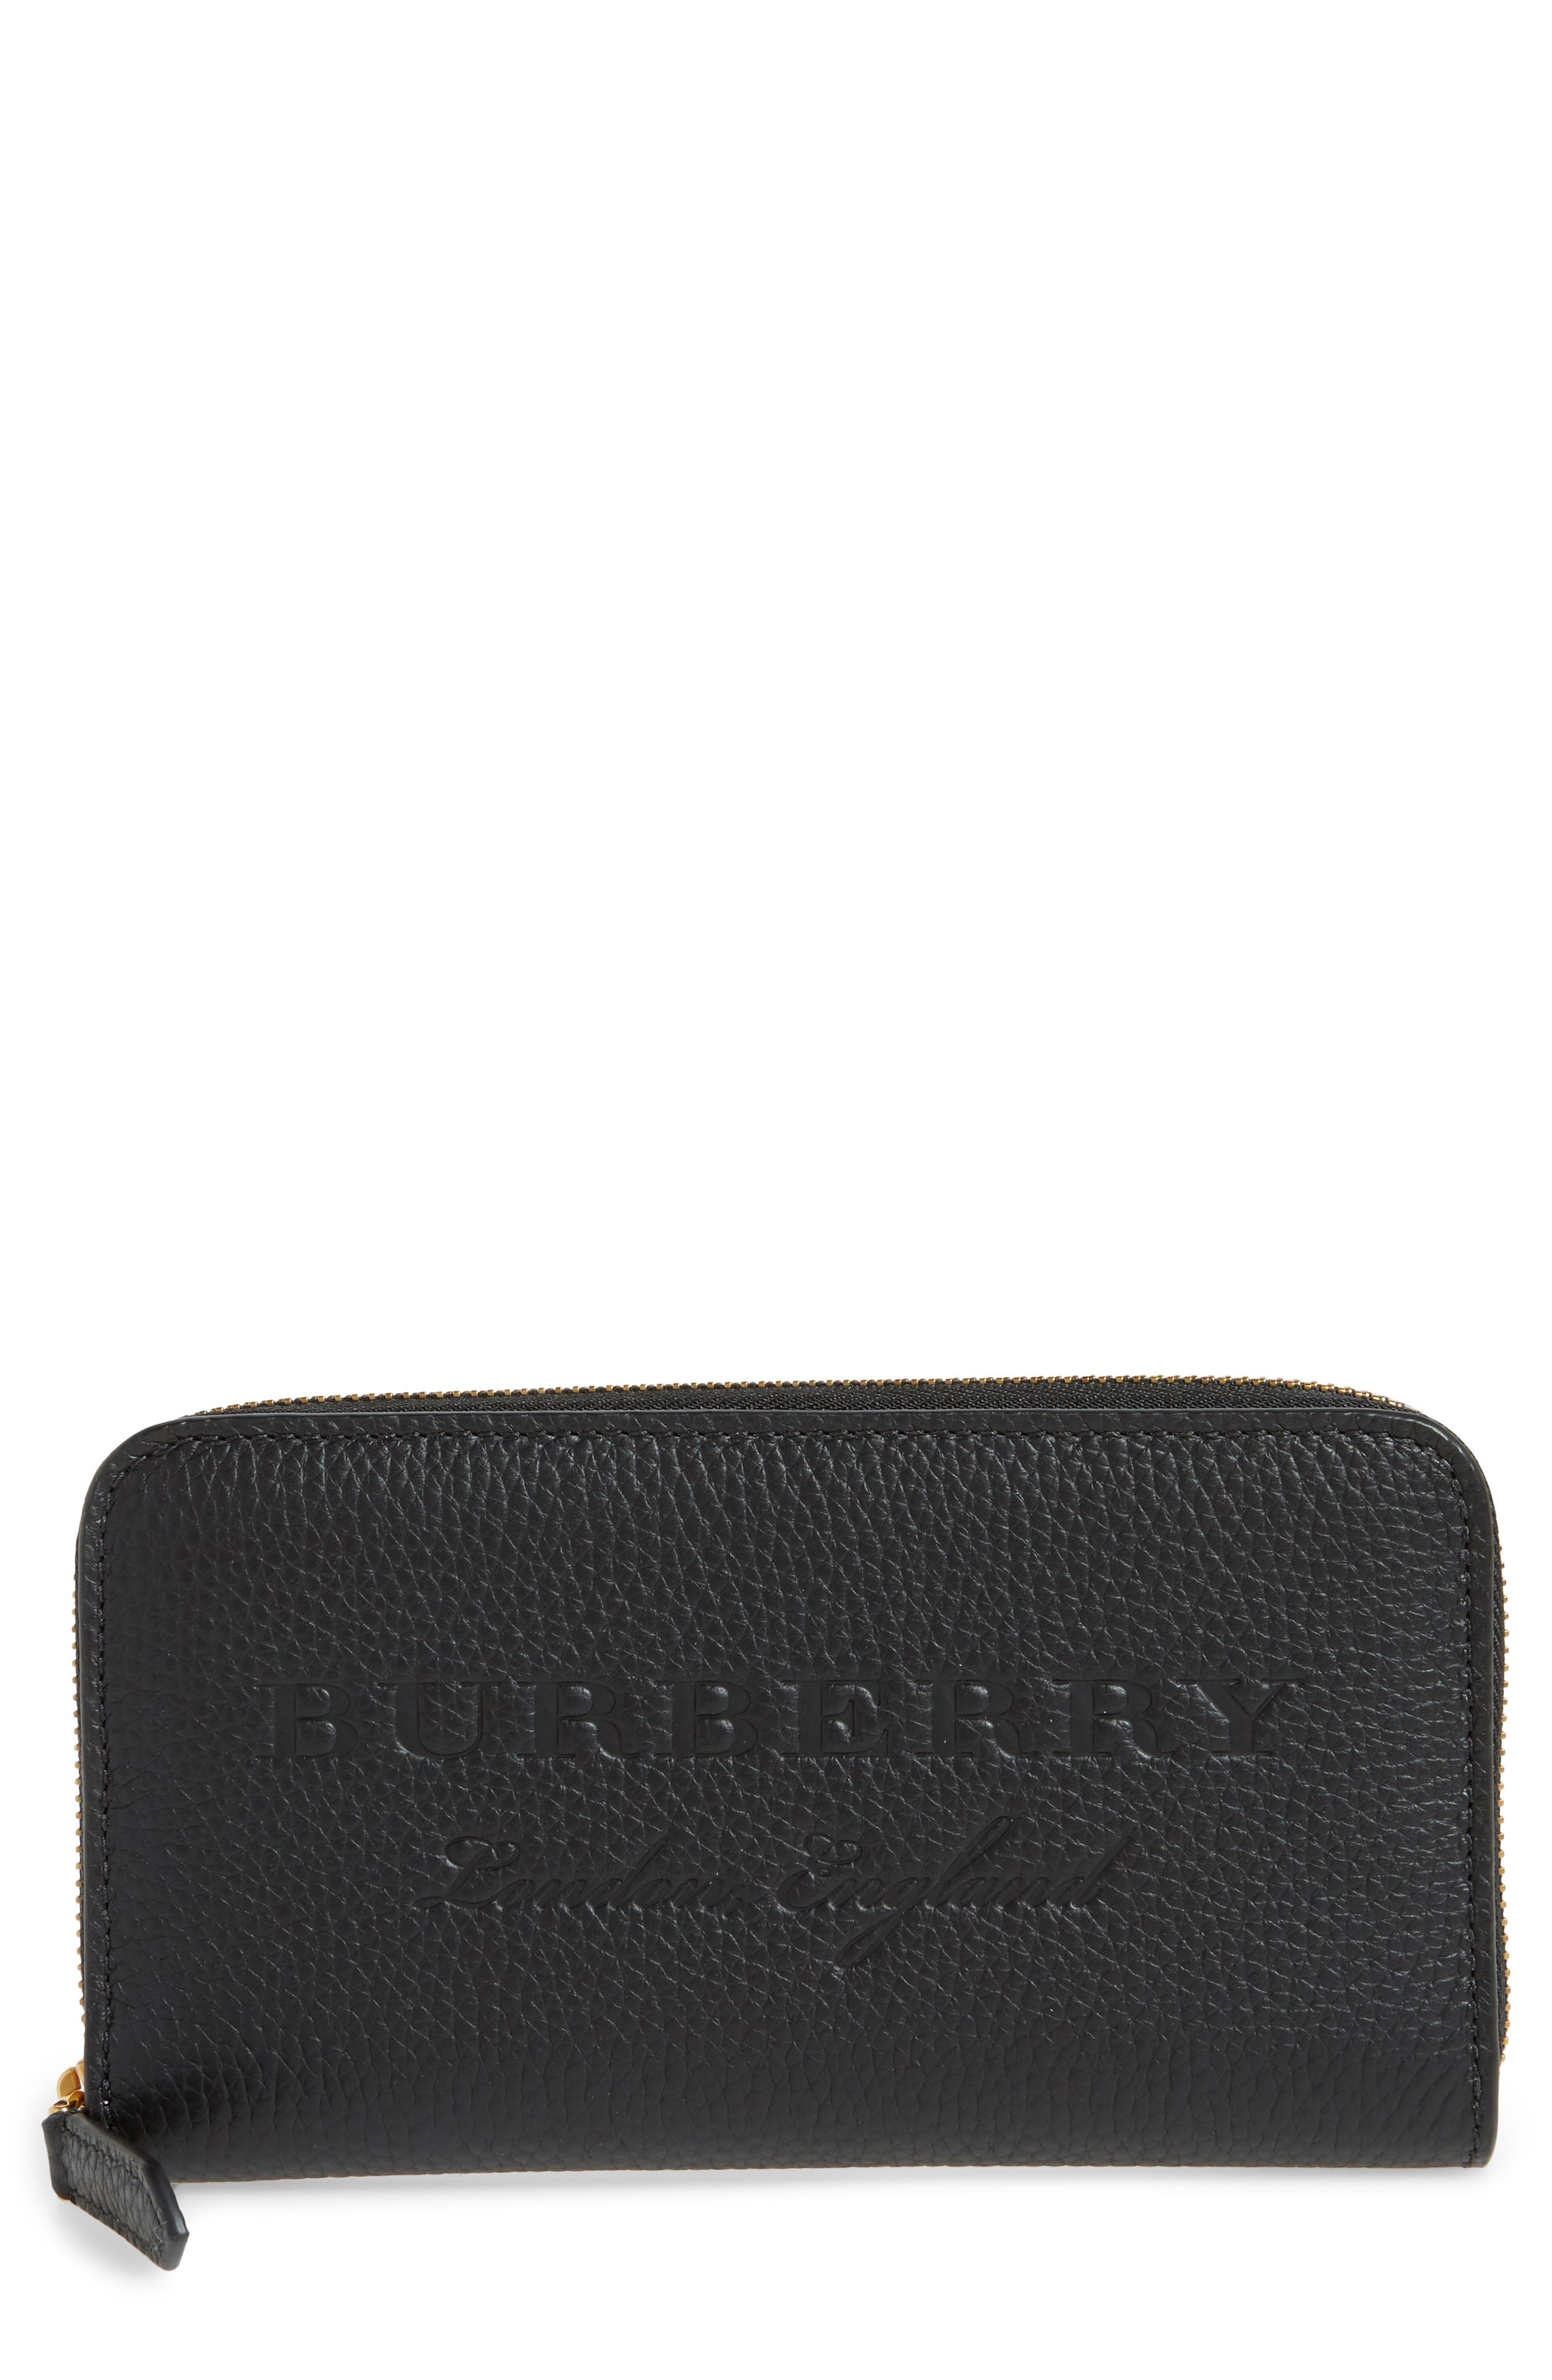 Leather Zip-Around Wallet,                             Main thumbnail 1, color,                             001